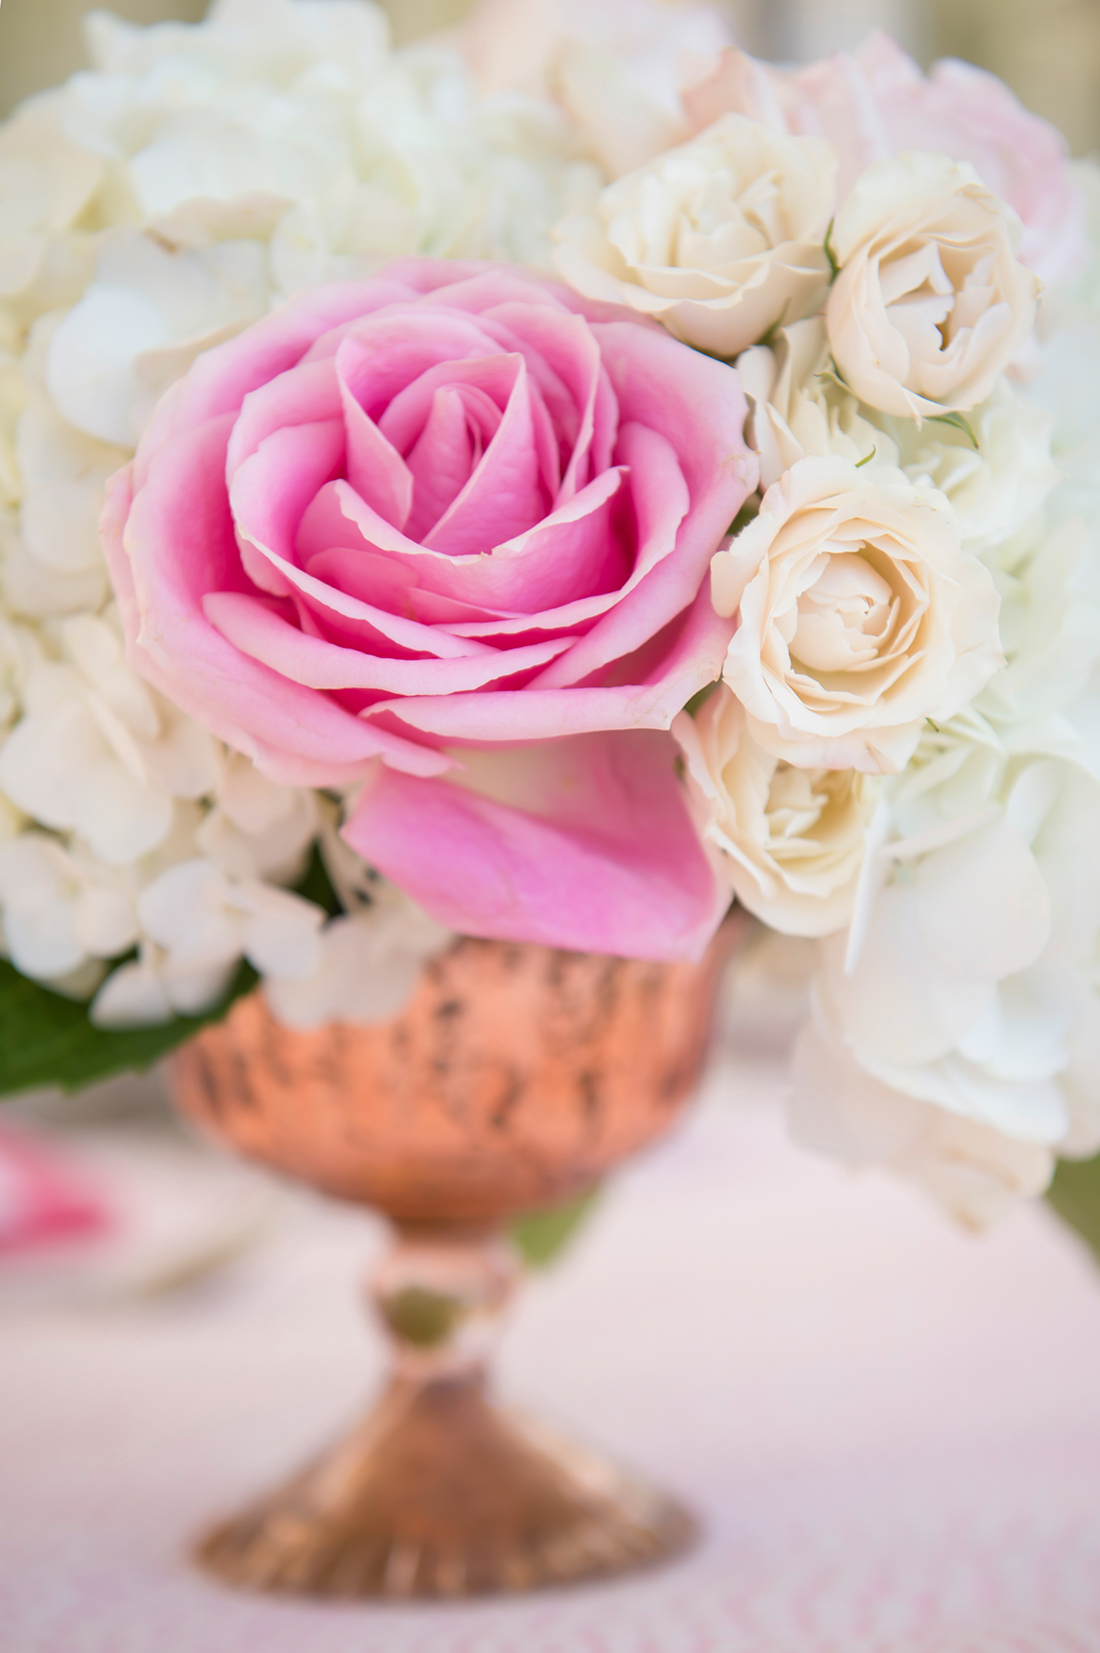 An image of pink and white roses arrangement for something lovely event